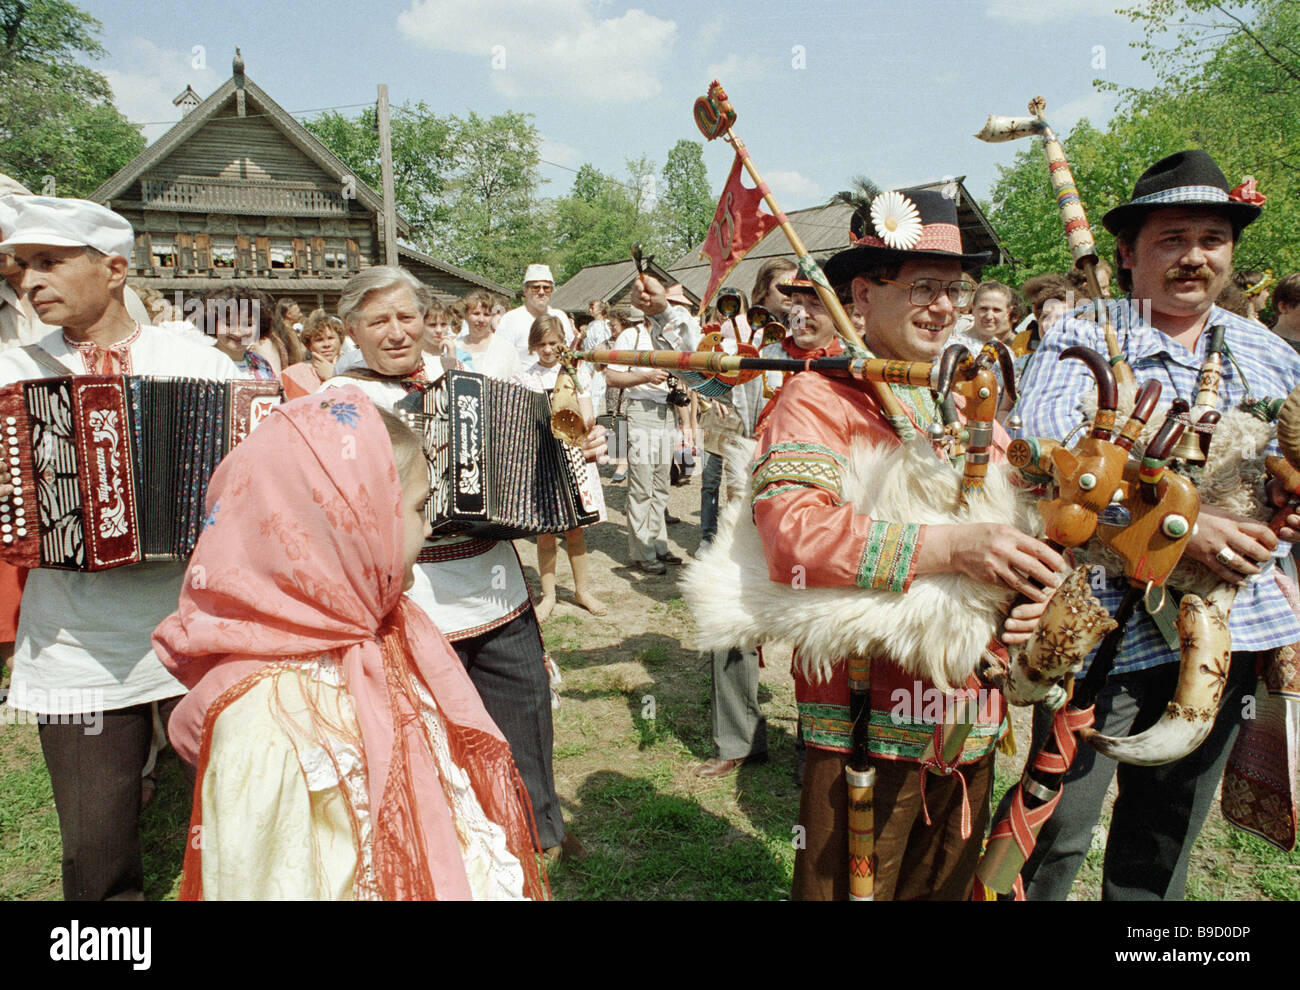 Folklore groups performing during the days of Slavic Alphabet and Culture - Stock Image